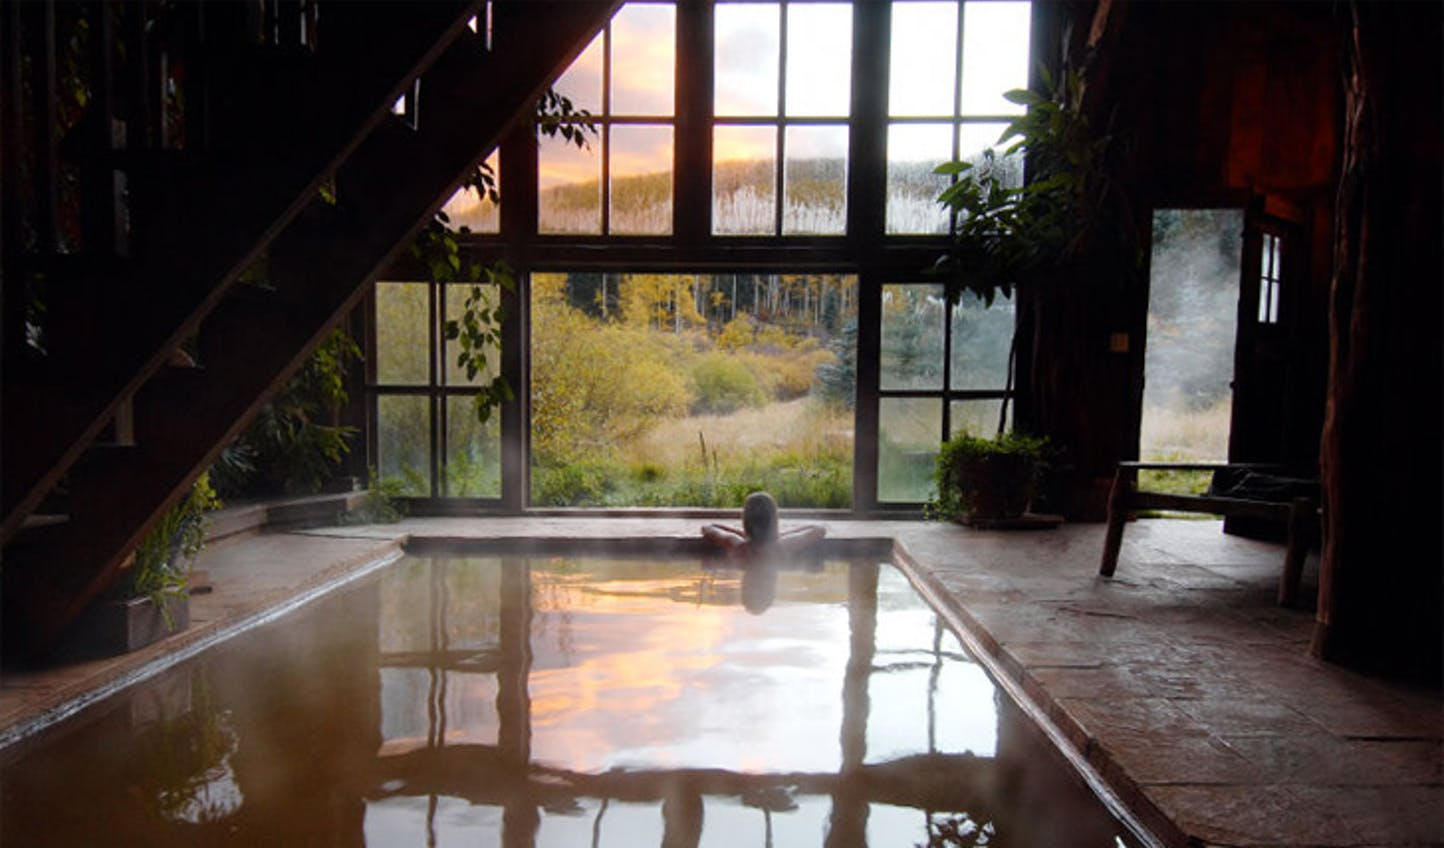 The idyllic hotel spa at Dunton Hot Springs